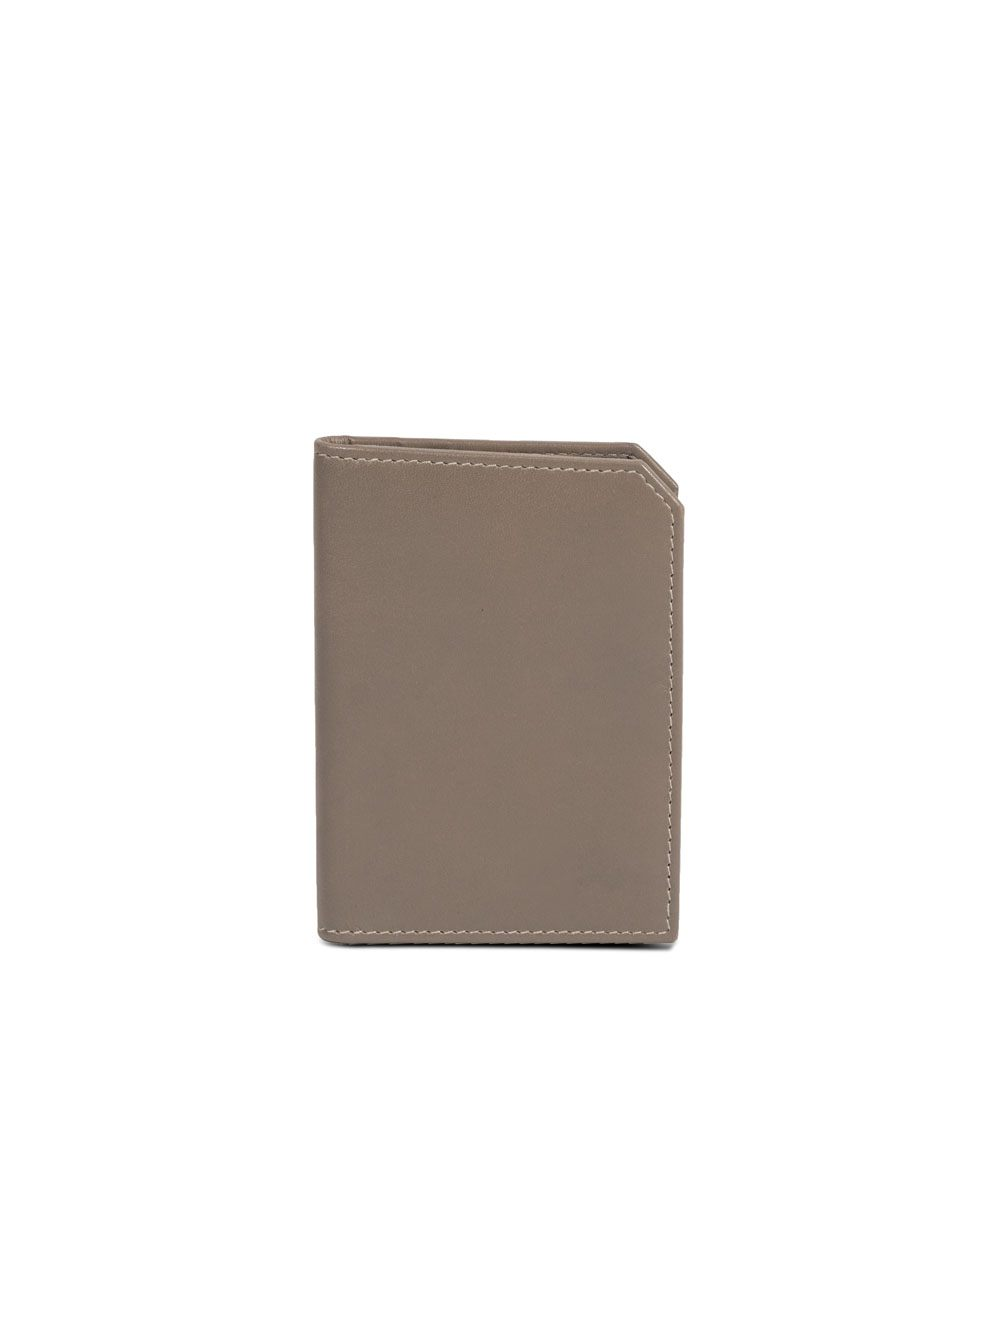 Credit Card Holder Bi-Fold